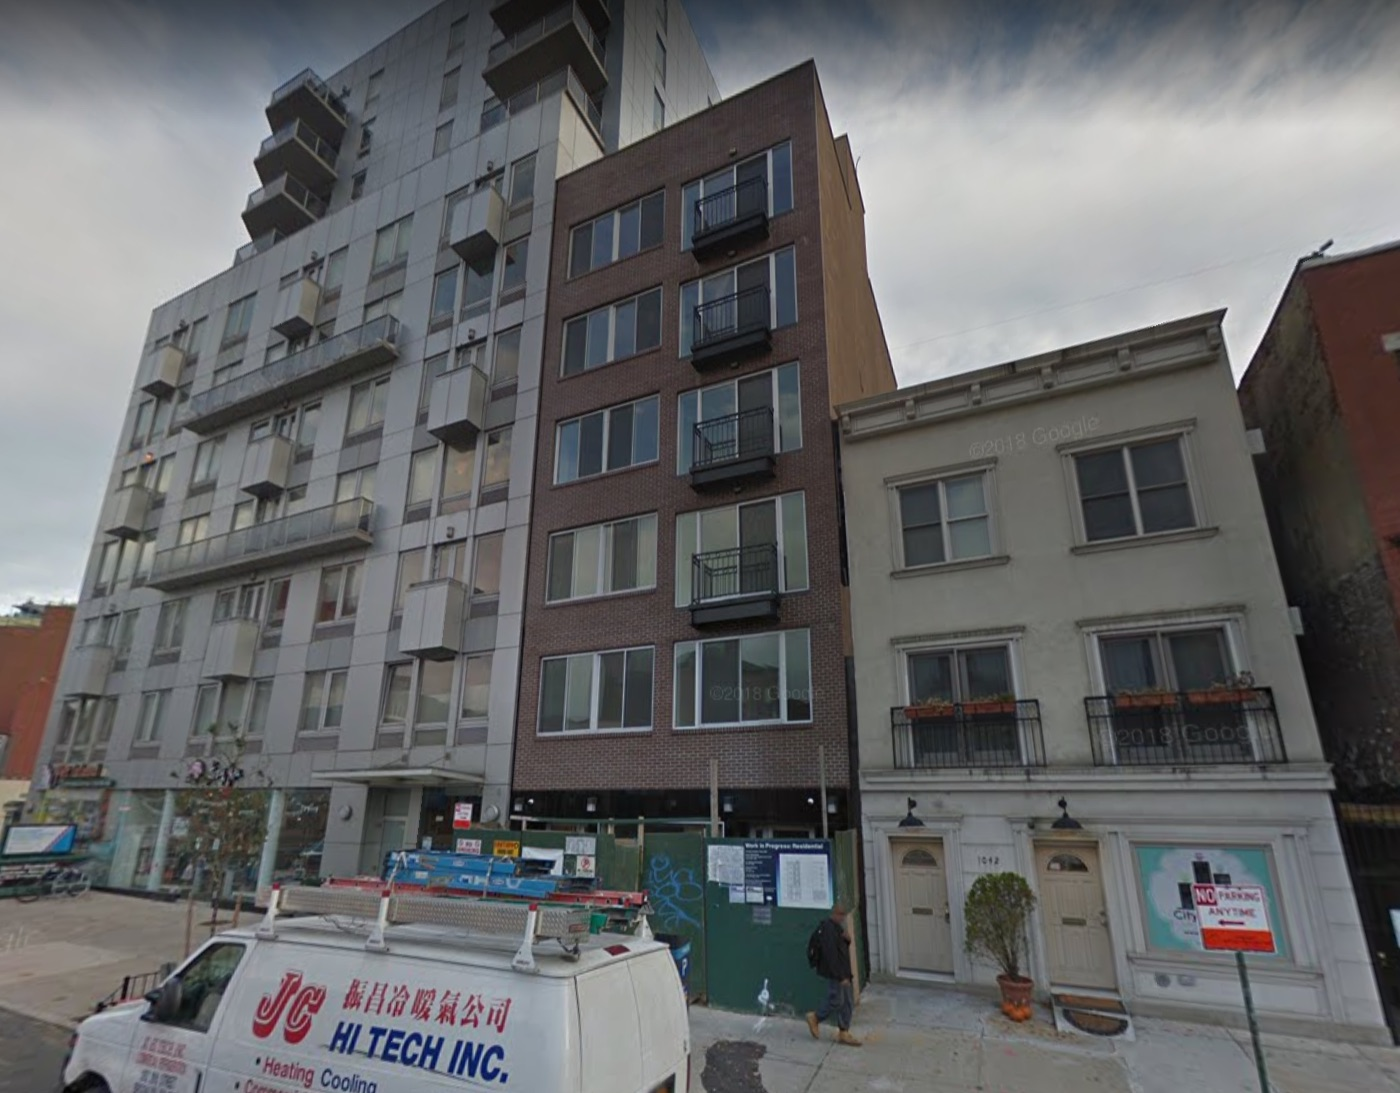 Applications Open for 3 \'Affordable\' Units in LIC, Rent ...